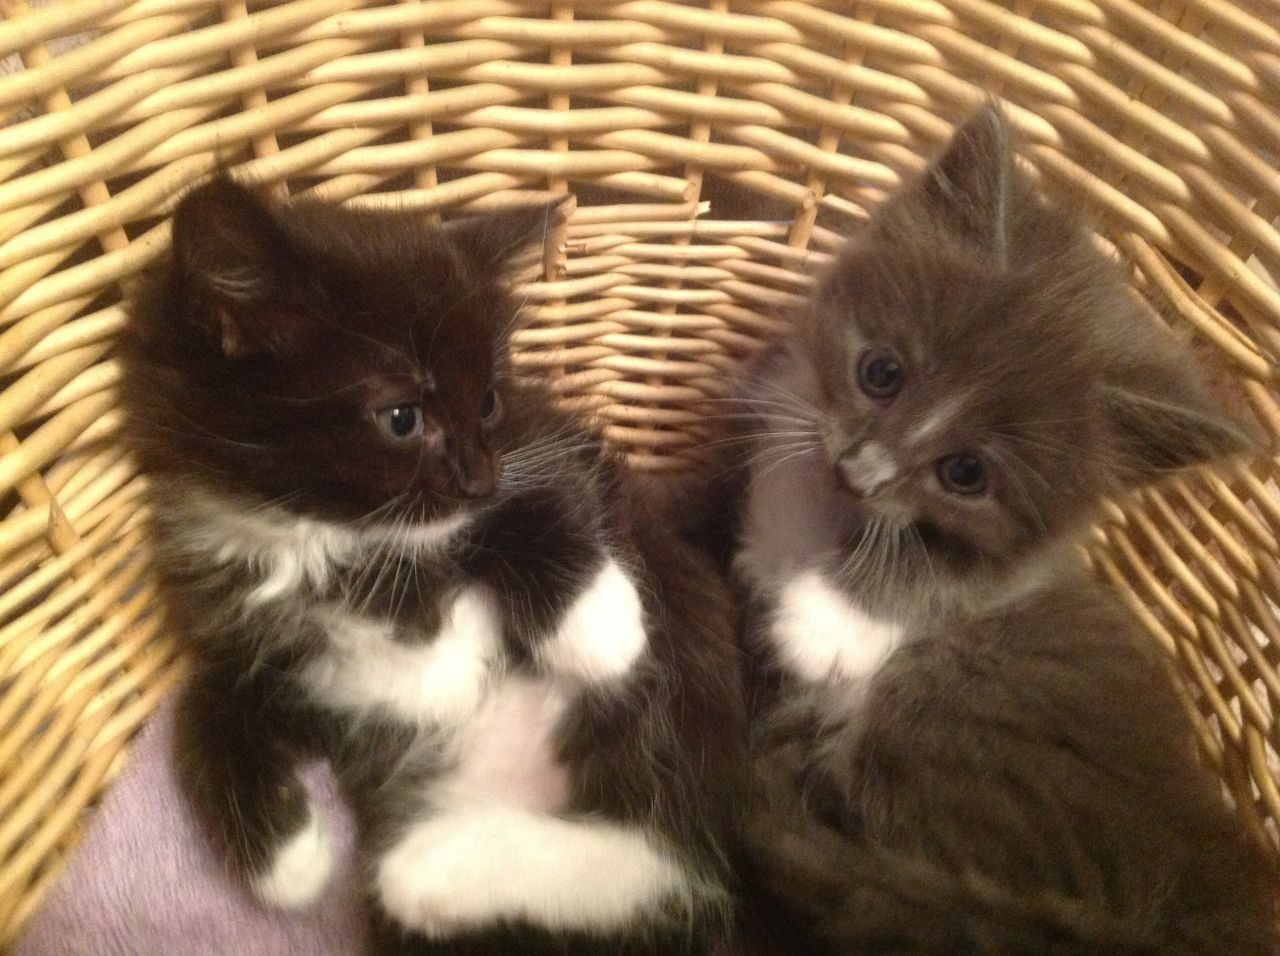 Chantilly-tiffany Kitten: Chantilly Tiffany Chantilly Tiffanyburmese X Kittens For Sale Carshalton Breed